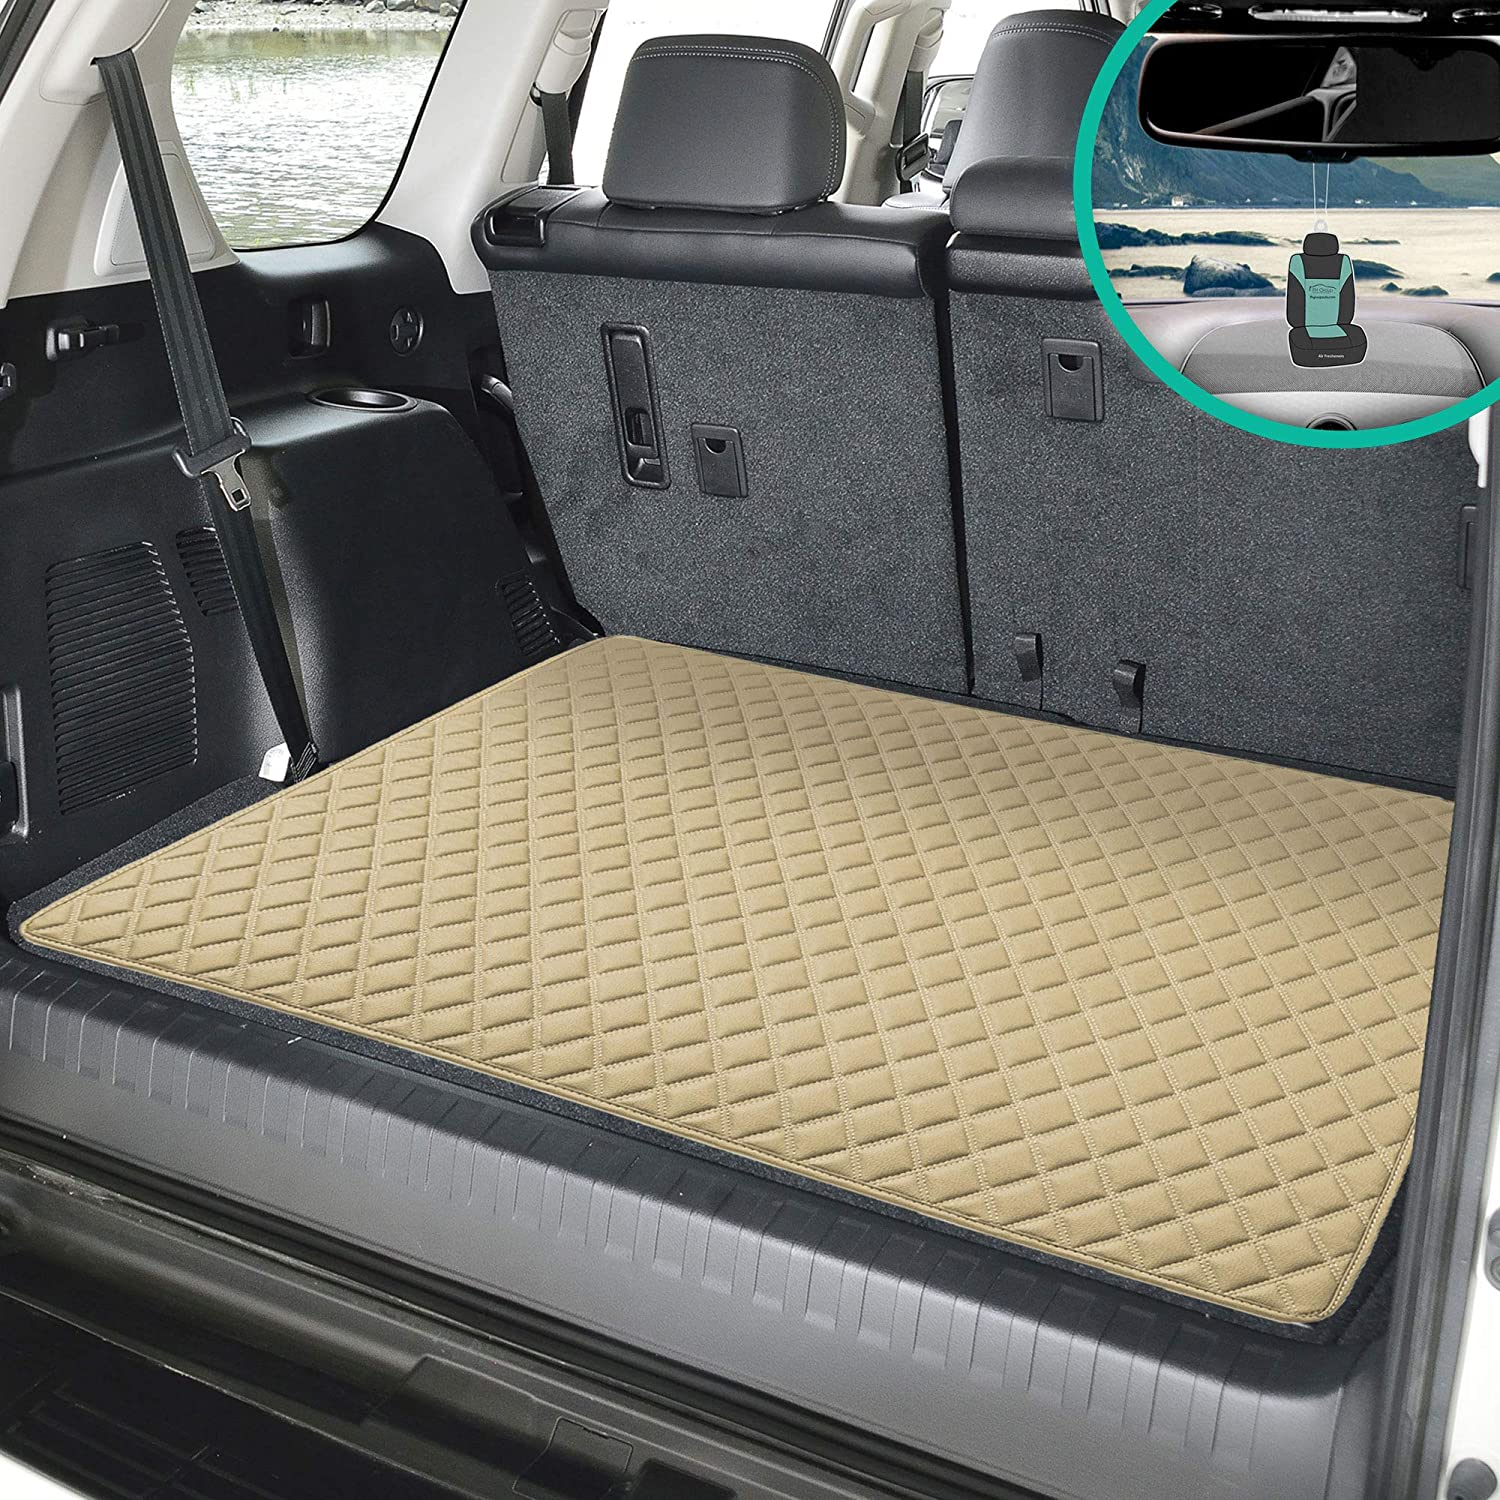 FH Group F16501 Deluxe Heavy-Duty Faux Leather Diamond Pattern Multi-Purpose Cargo Liner (Beige) 32 INCH - Universal Fit for Cars, Trucks & SUVs